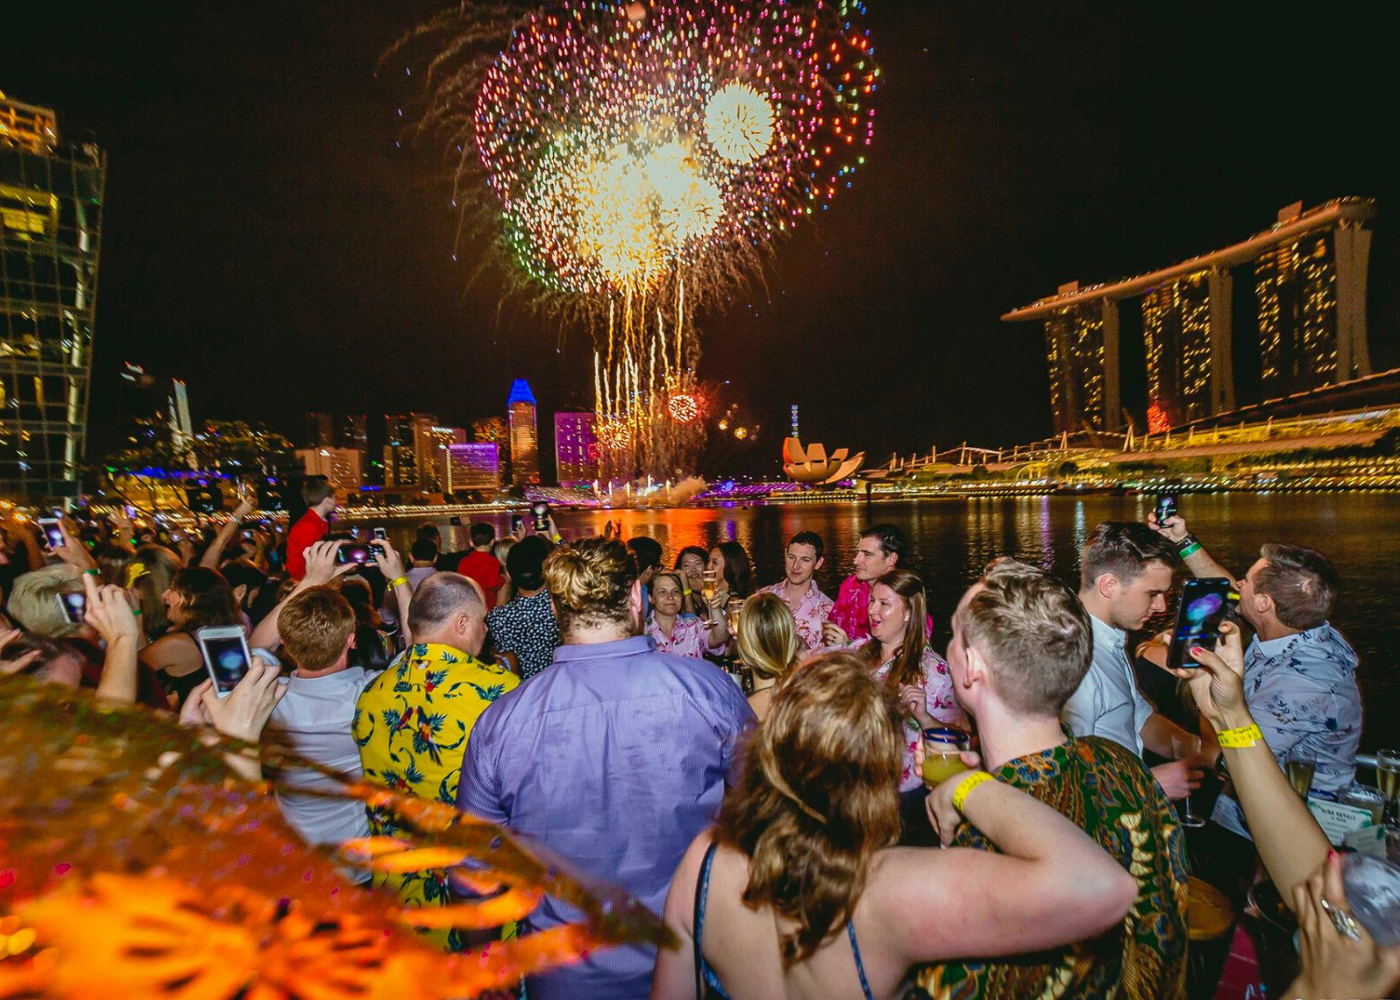 Where to watch fireworks in Singapore: Super Loco Customs House